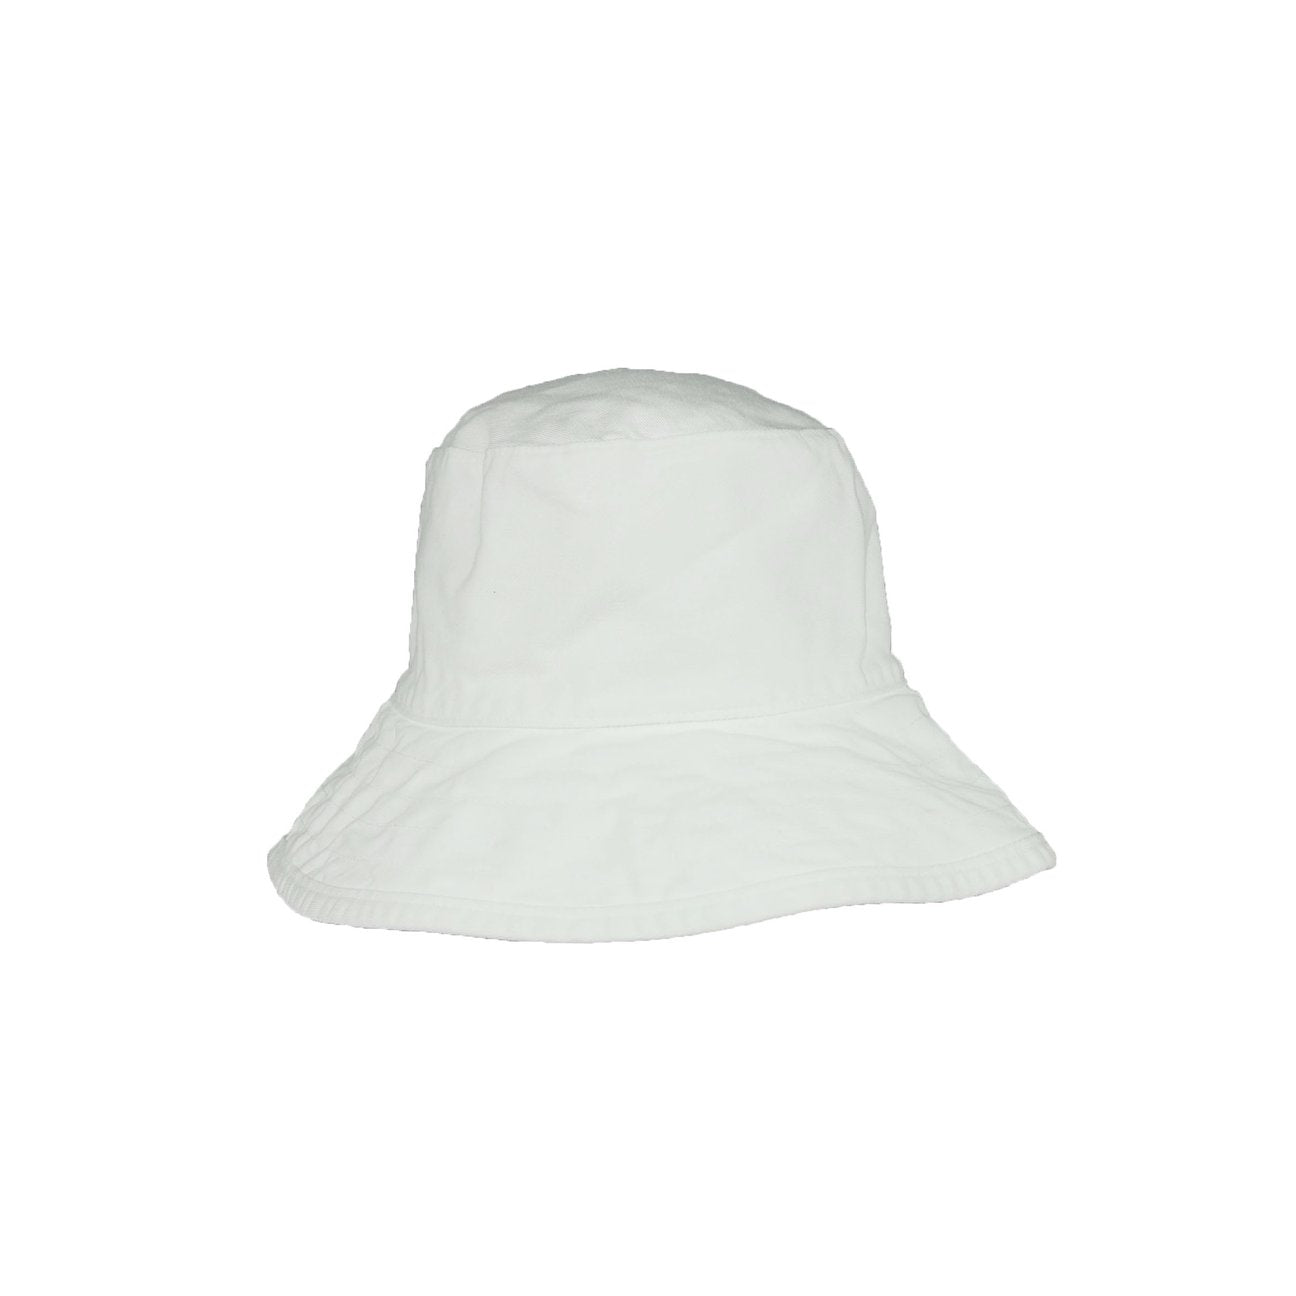 Hat Attack Washed Cotton Crusher White